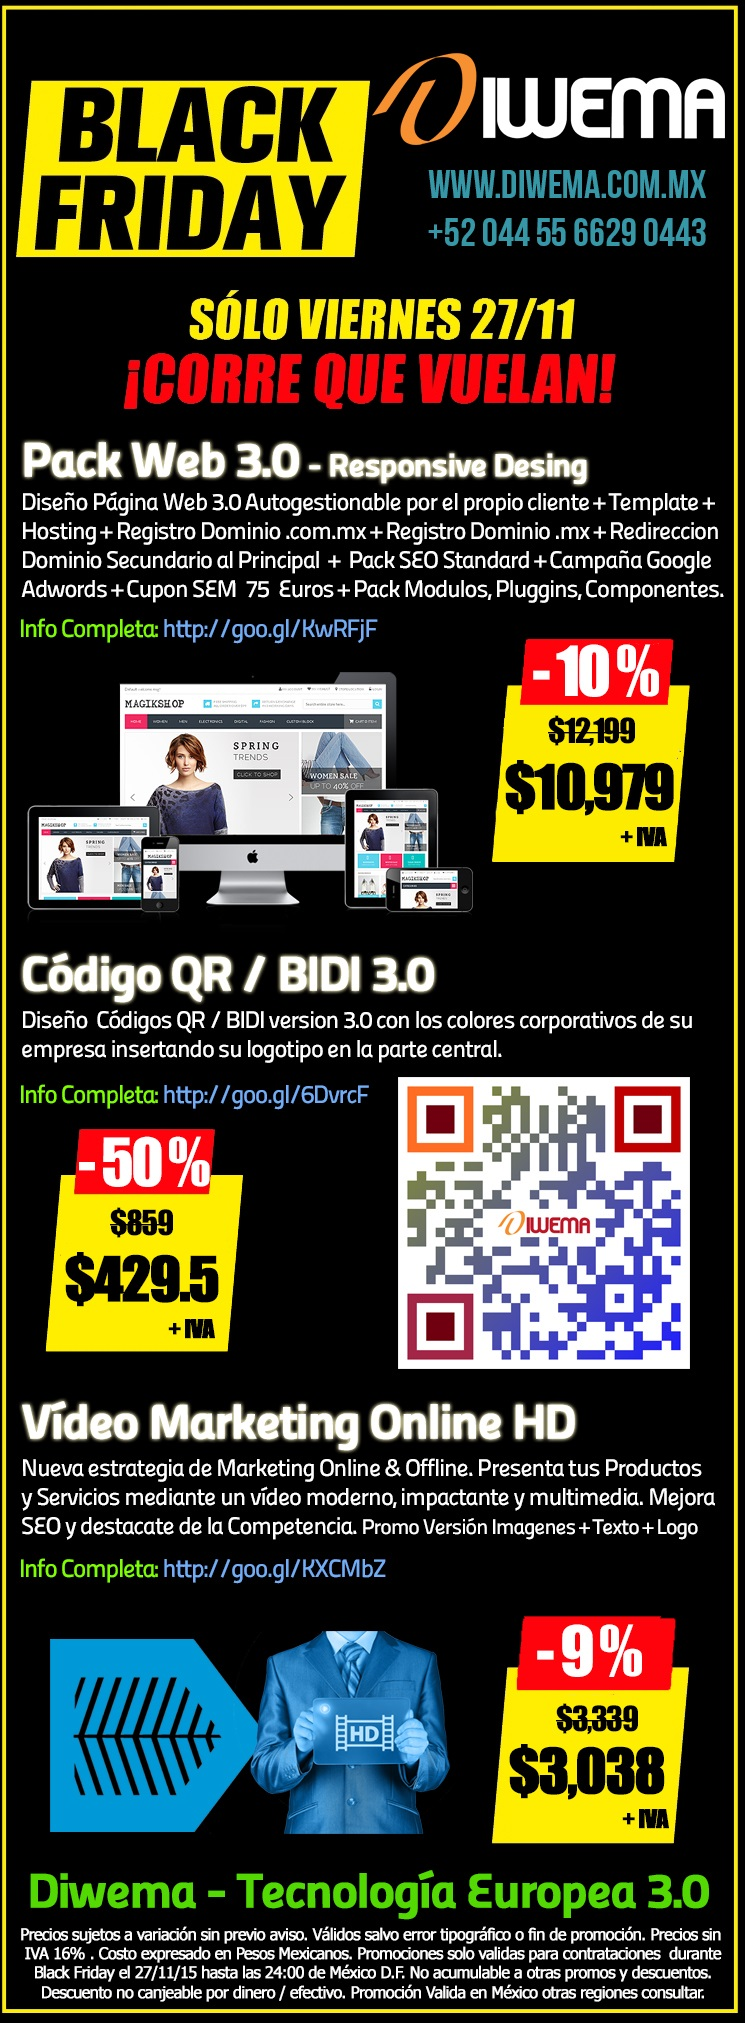 Promociones Especiales Diwema - Diseño Web, Diseño Códigos QR / BIDI, Creación Vídeo Marketing Online HD, Validas para Black Friday 27/11/2015